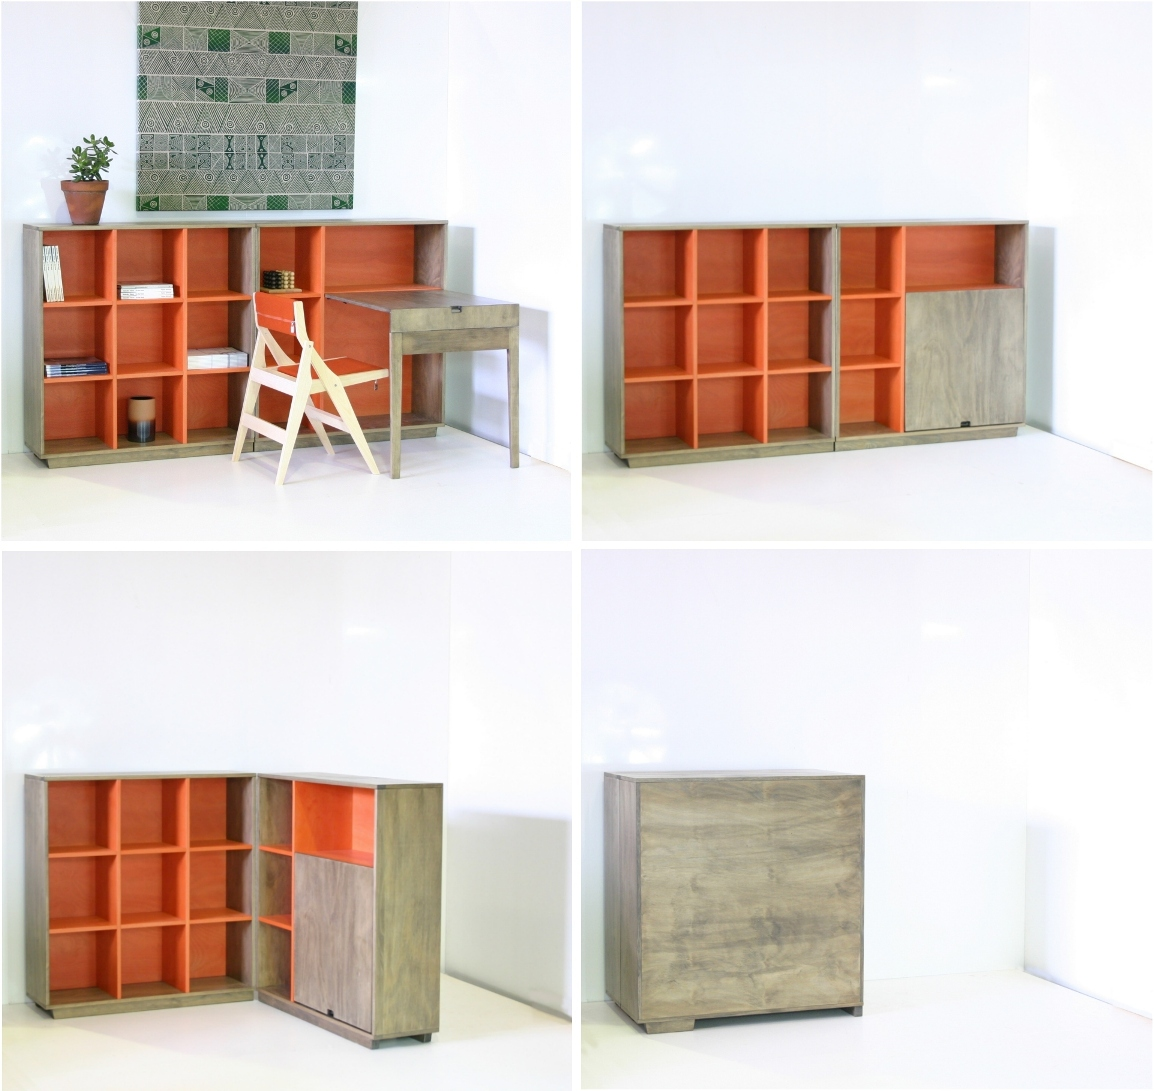 trans-form-it bookcase sequence